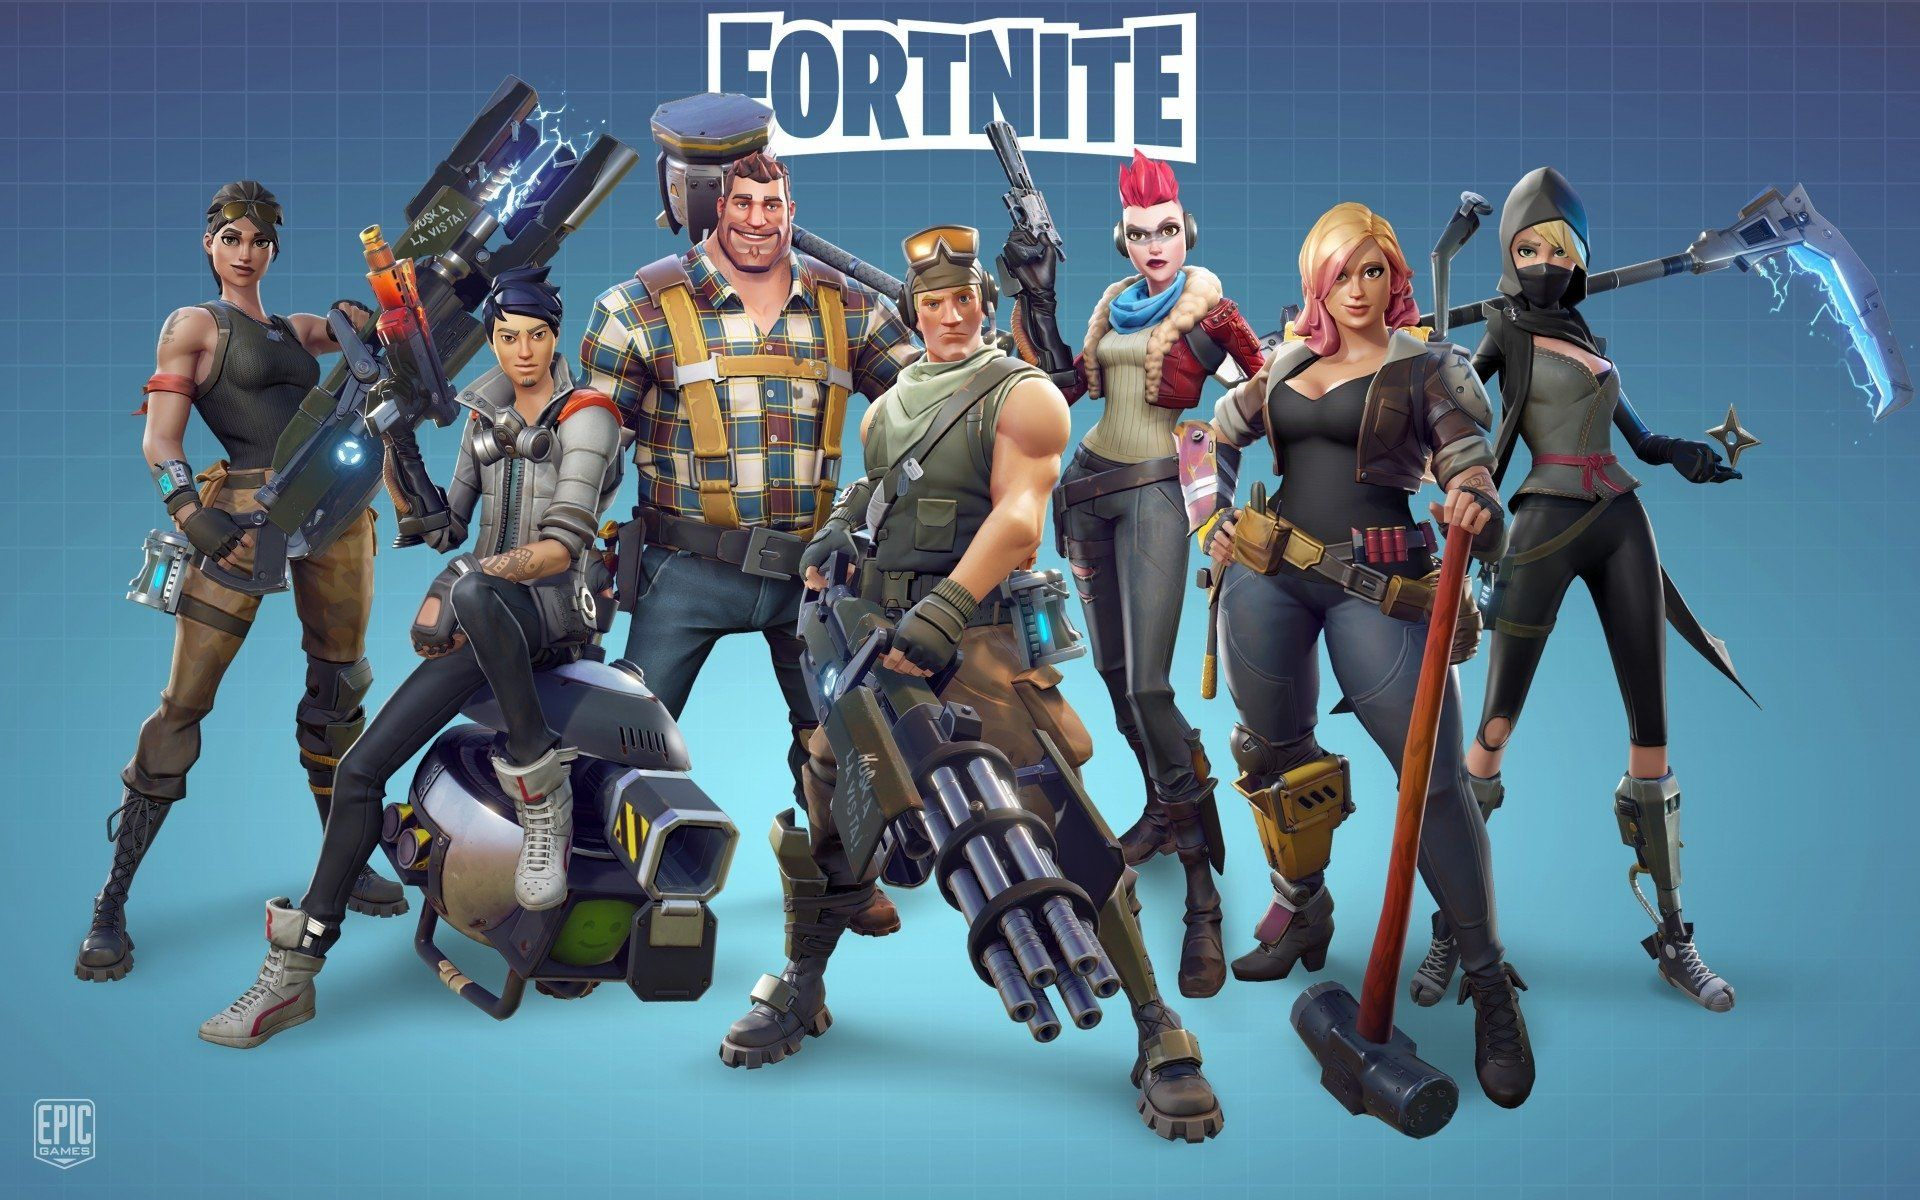 Fortnite Wallpapers   Top Fortnite Backgrounds   WallpaperAccess 1920x1200